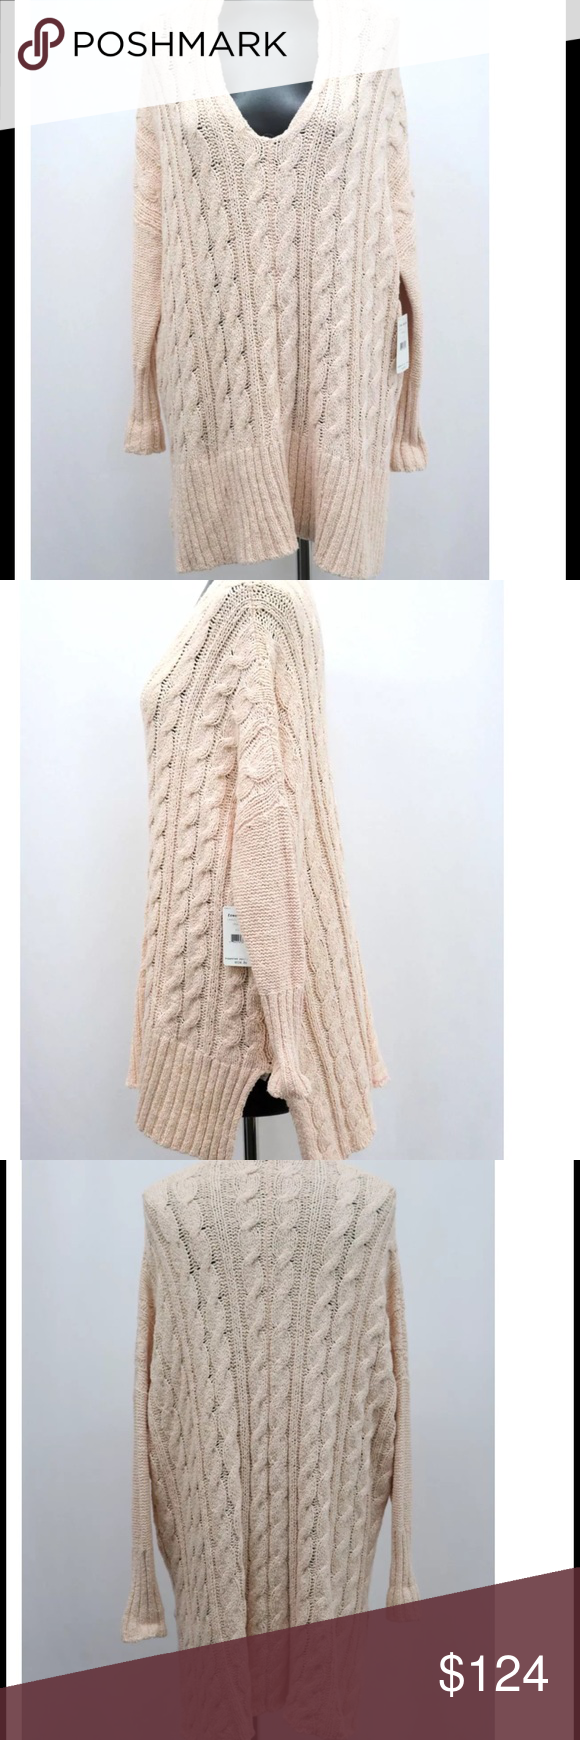 Free People Long Sweater NWT New, perfect, and the prettiest color! Super soft. I absolutely love the way Free People fits. Oversized cable knit sweater with side slits. Warm, cozy, and cuddly! No trades. PLEASE, no. Lowball offers. Free People Sweaters V-Necks